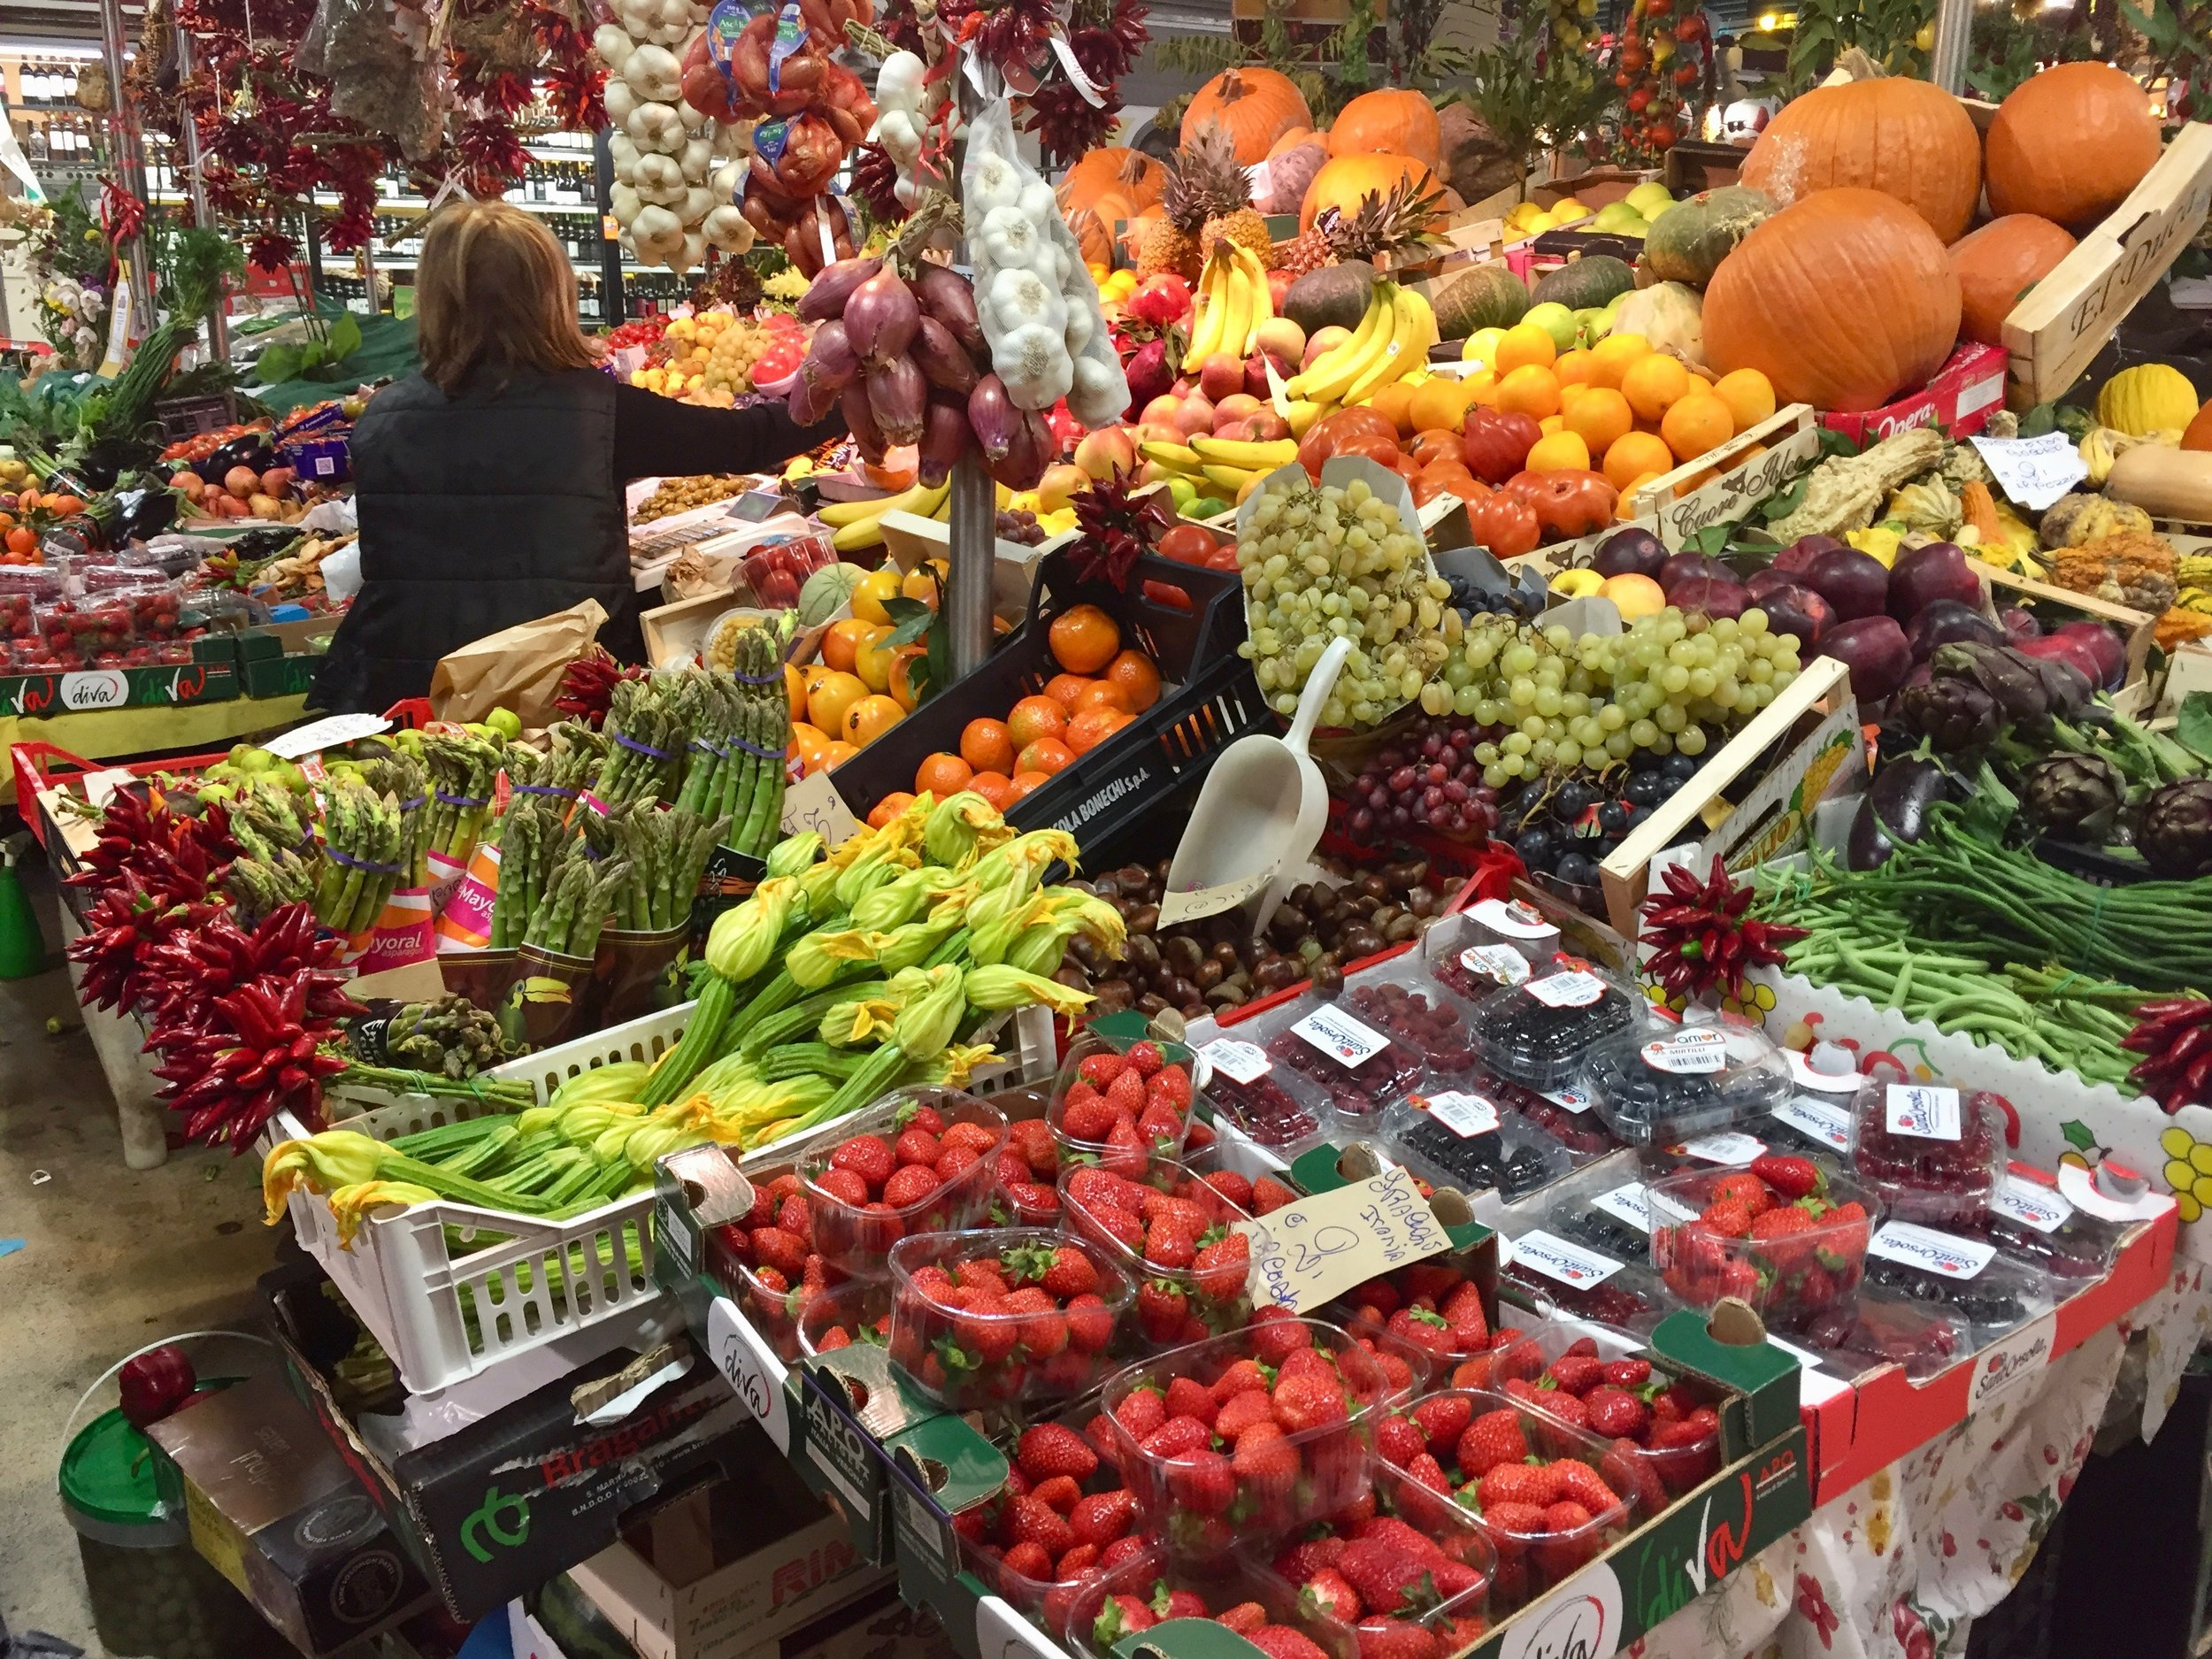 Mercato Centrale in Florence